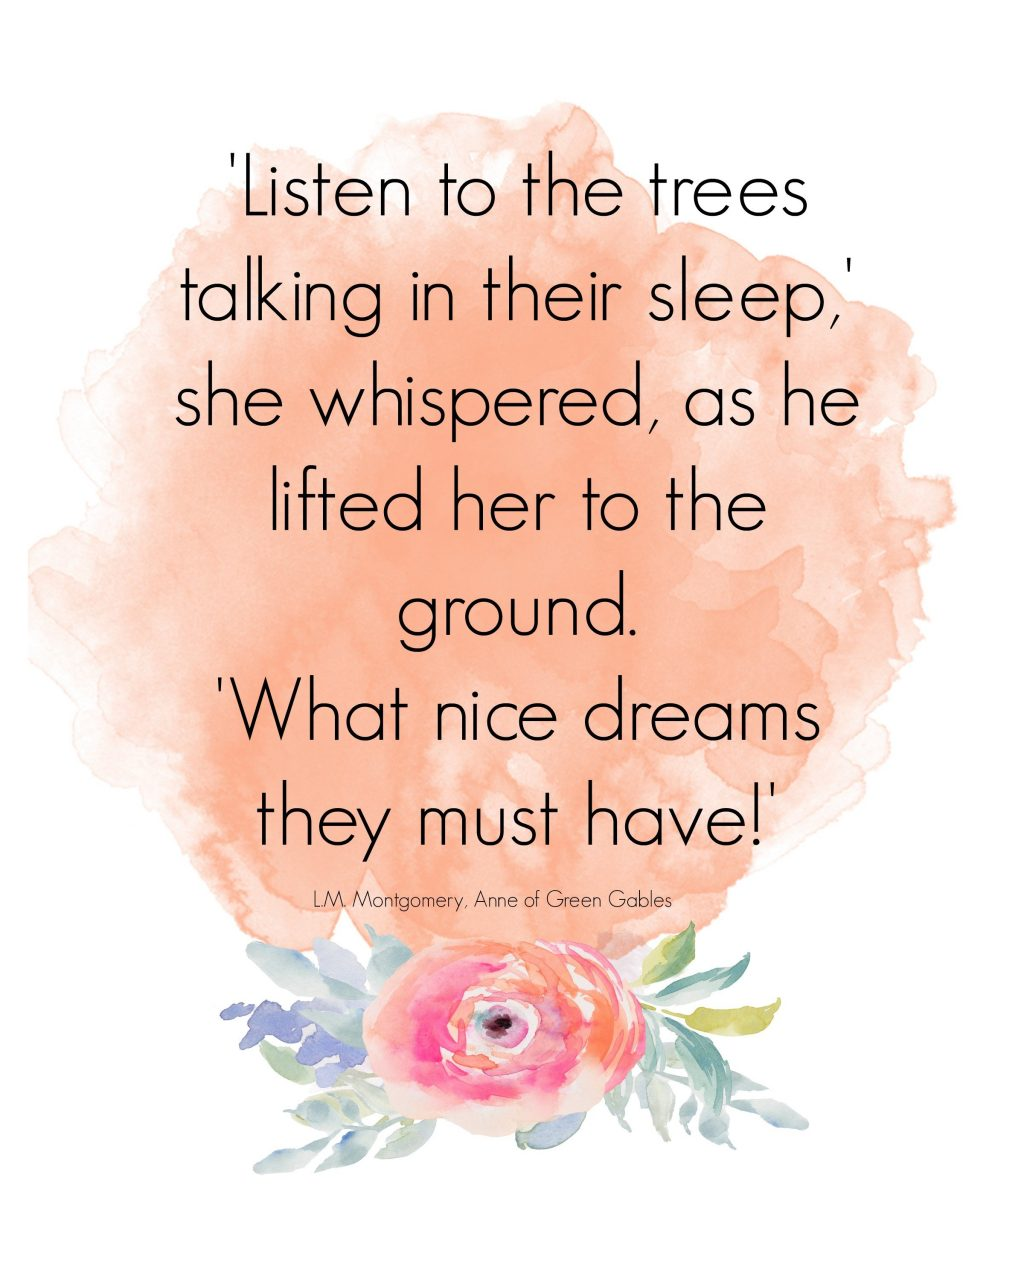 Listen to the trees by Anne of Green Gables printable by The Birch Cottage